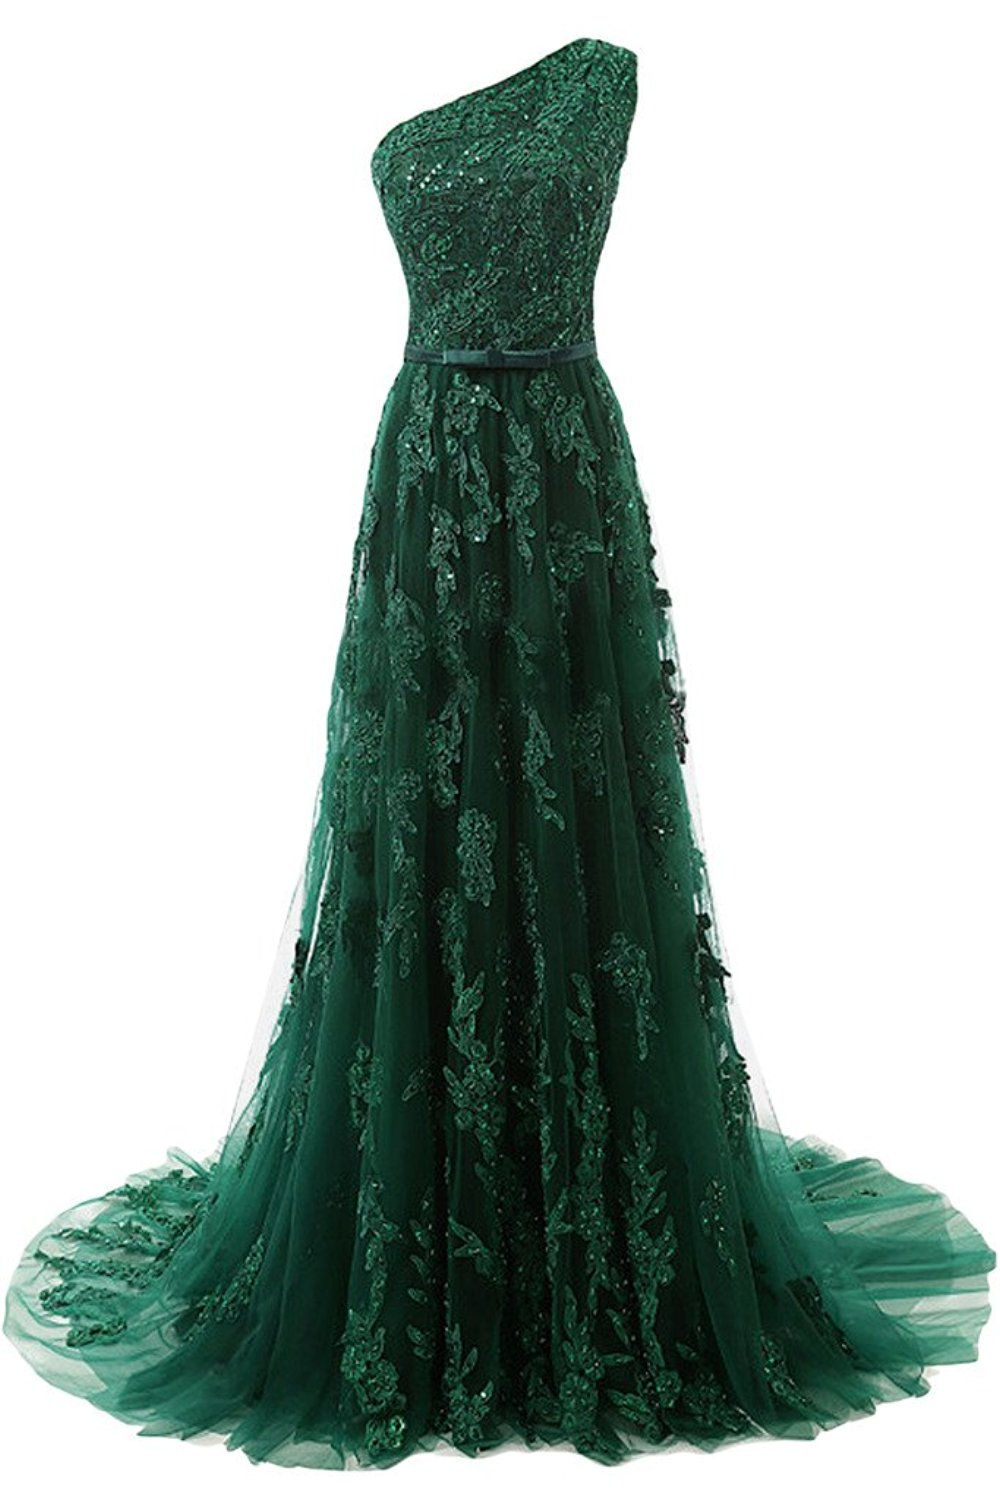 2cd61323ce06 Forest Green Lace Appliqués Tulle Floor Length Prom Dress Featuring One  Shoulder Bodice with Bow Accent Belt